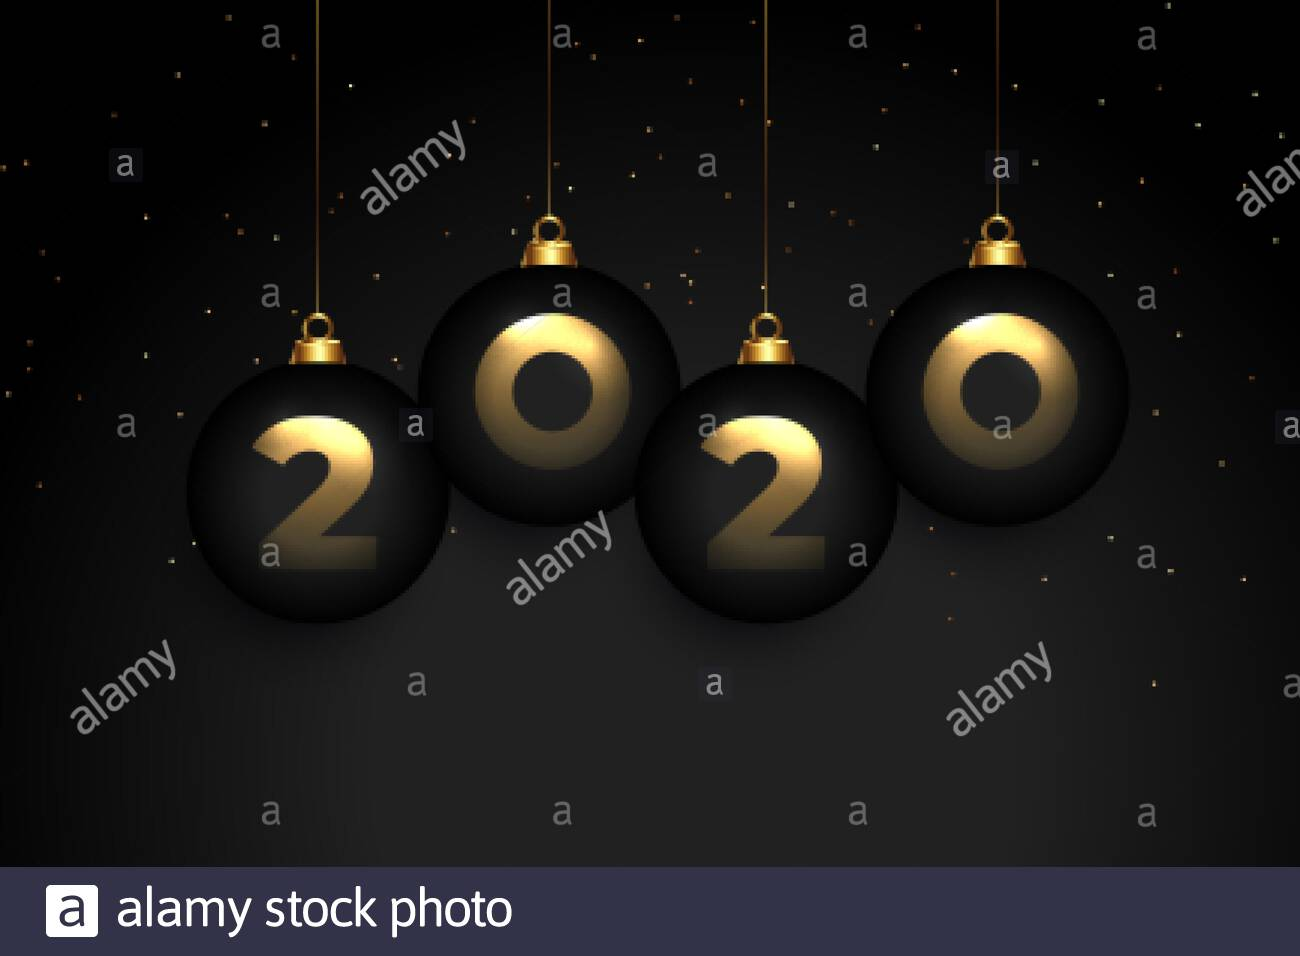 Elegant 2020 Black Premium New Year Wallpaper Design Stock